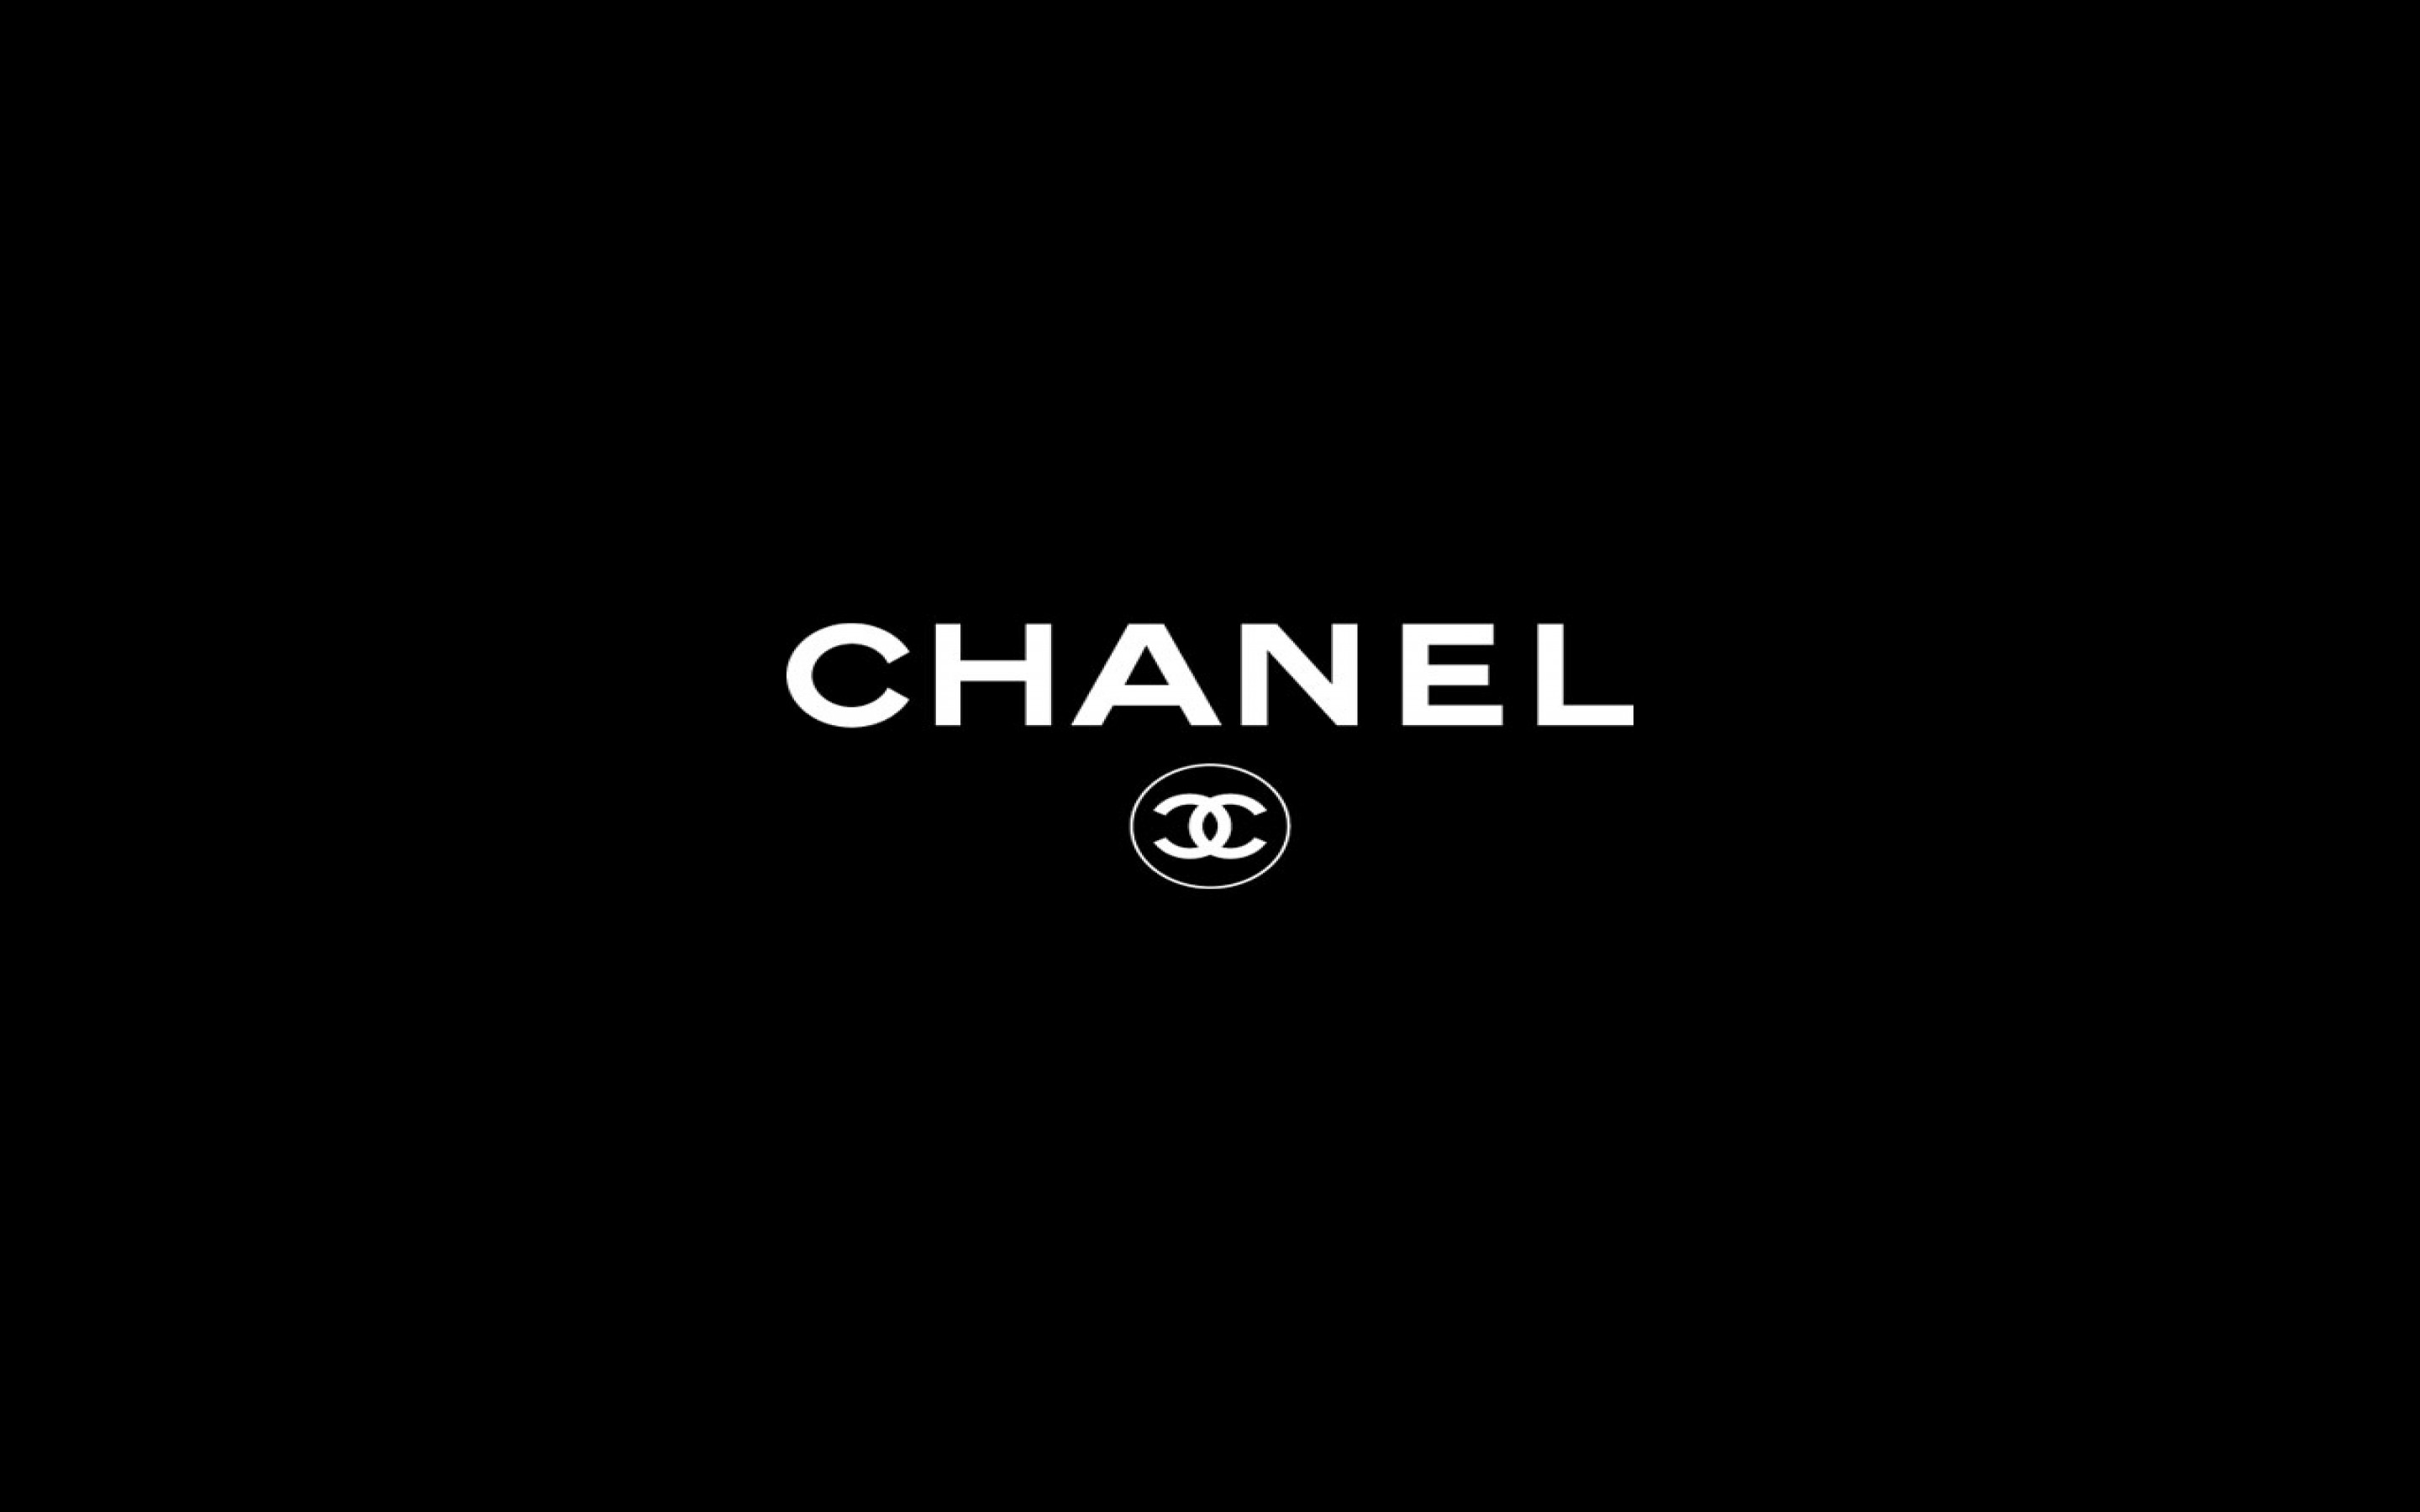 Chanel Logo Black   wallpaper 2880x1800